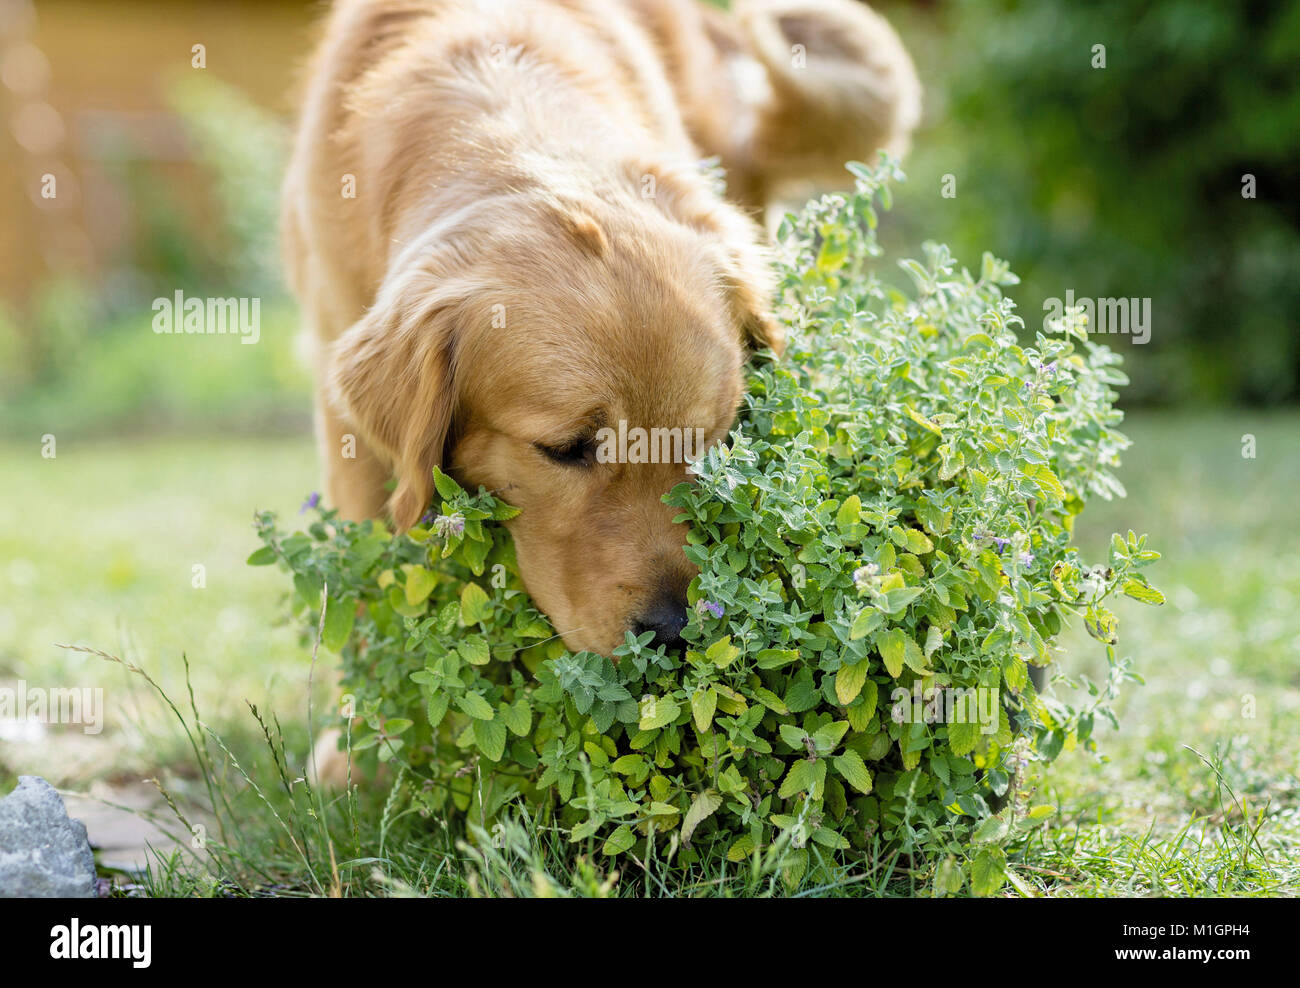 Golden Retriever. Adult dog sniffing on herbs. Germany. Restriction: Not for guide books for pet care until 9/2018 - Stock Image